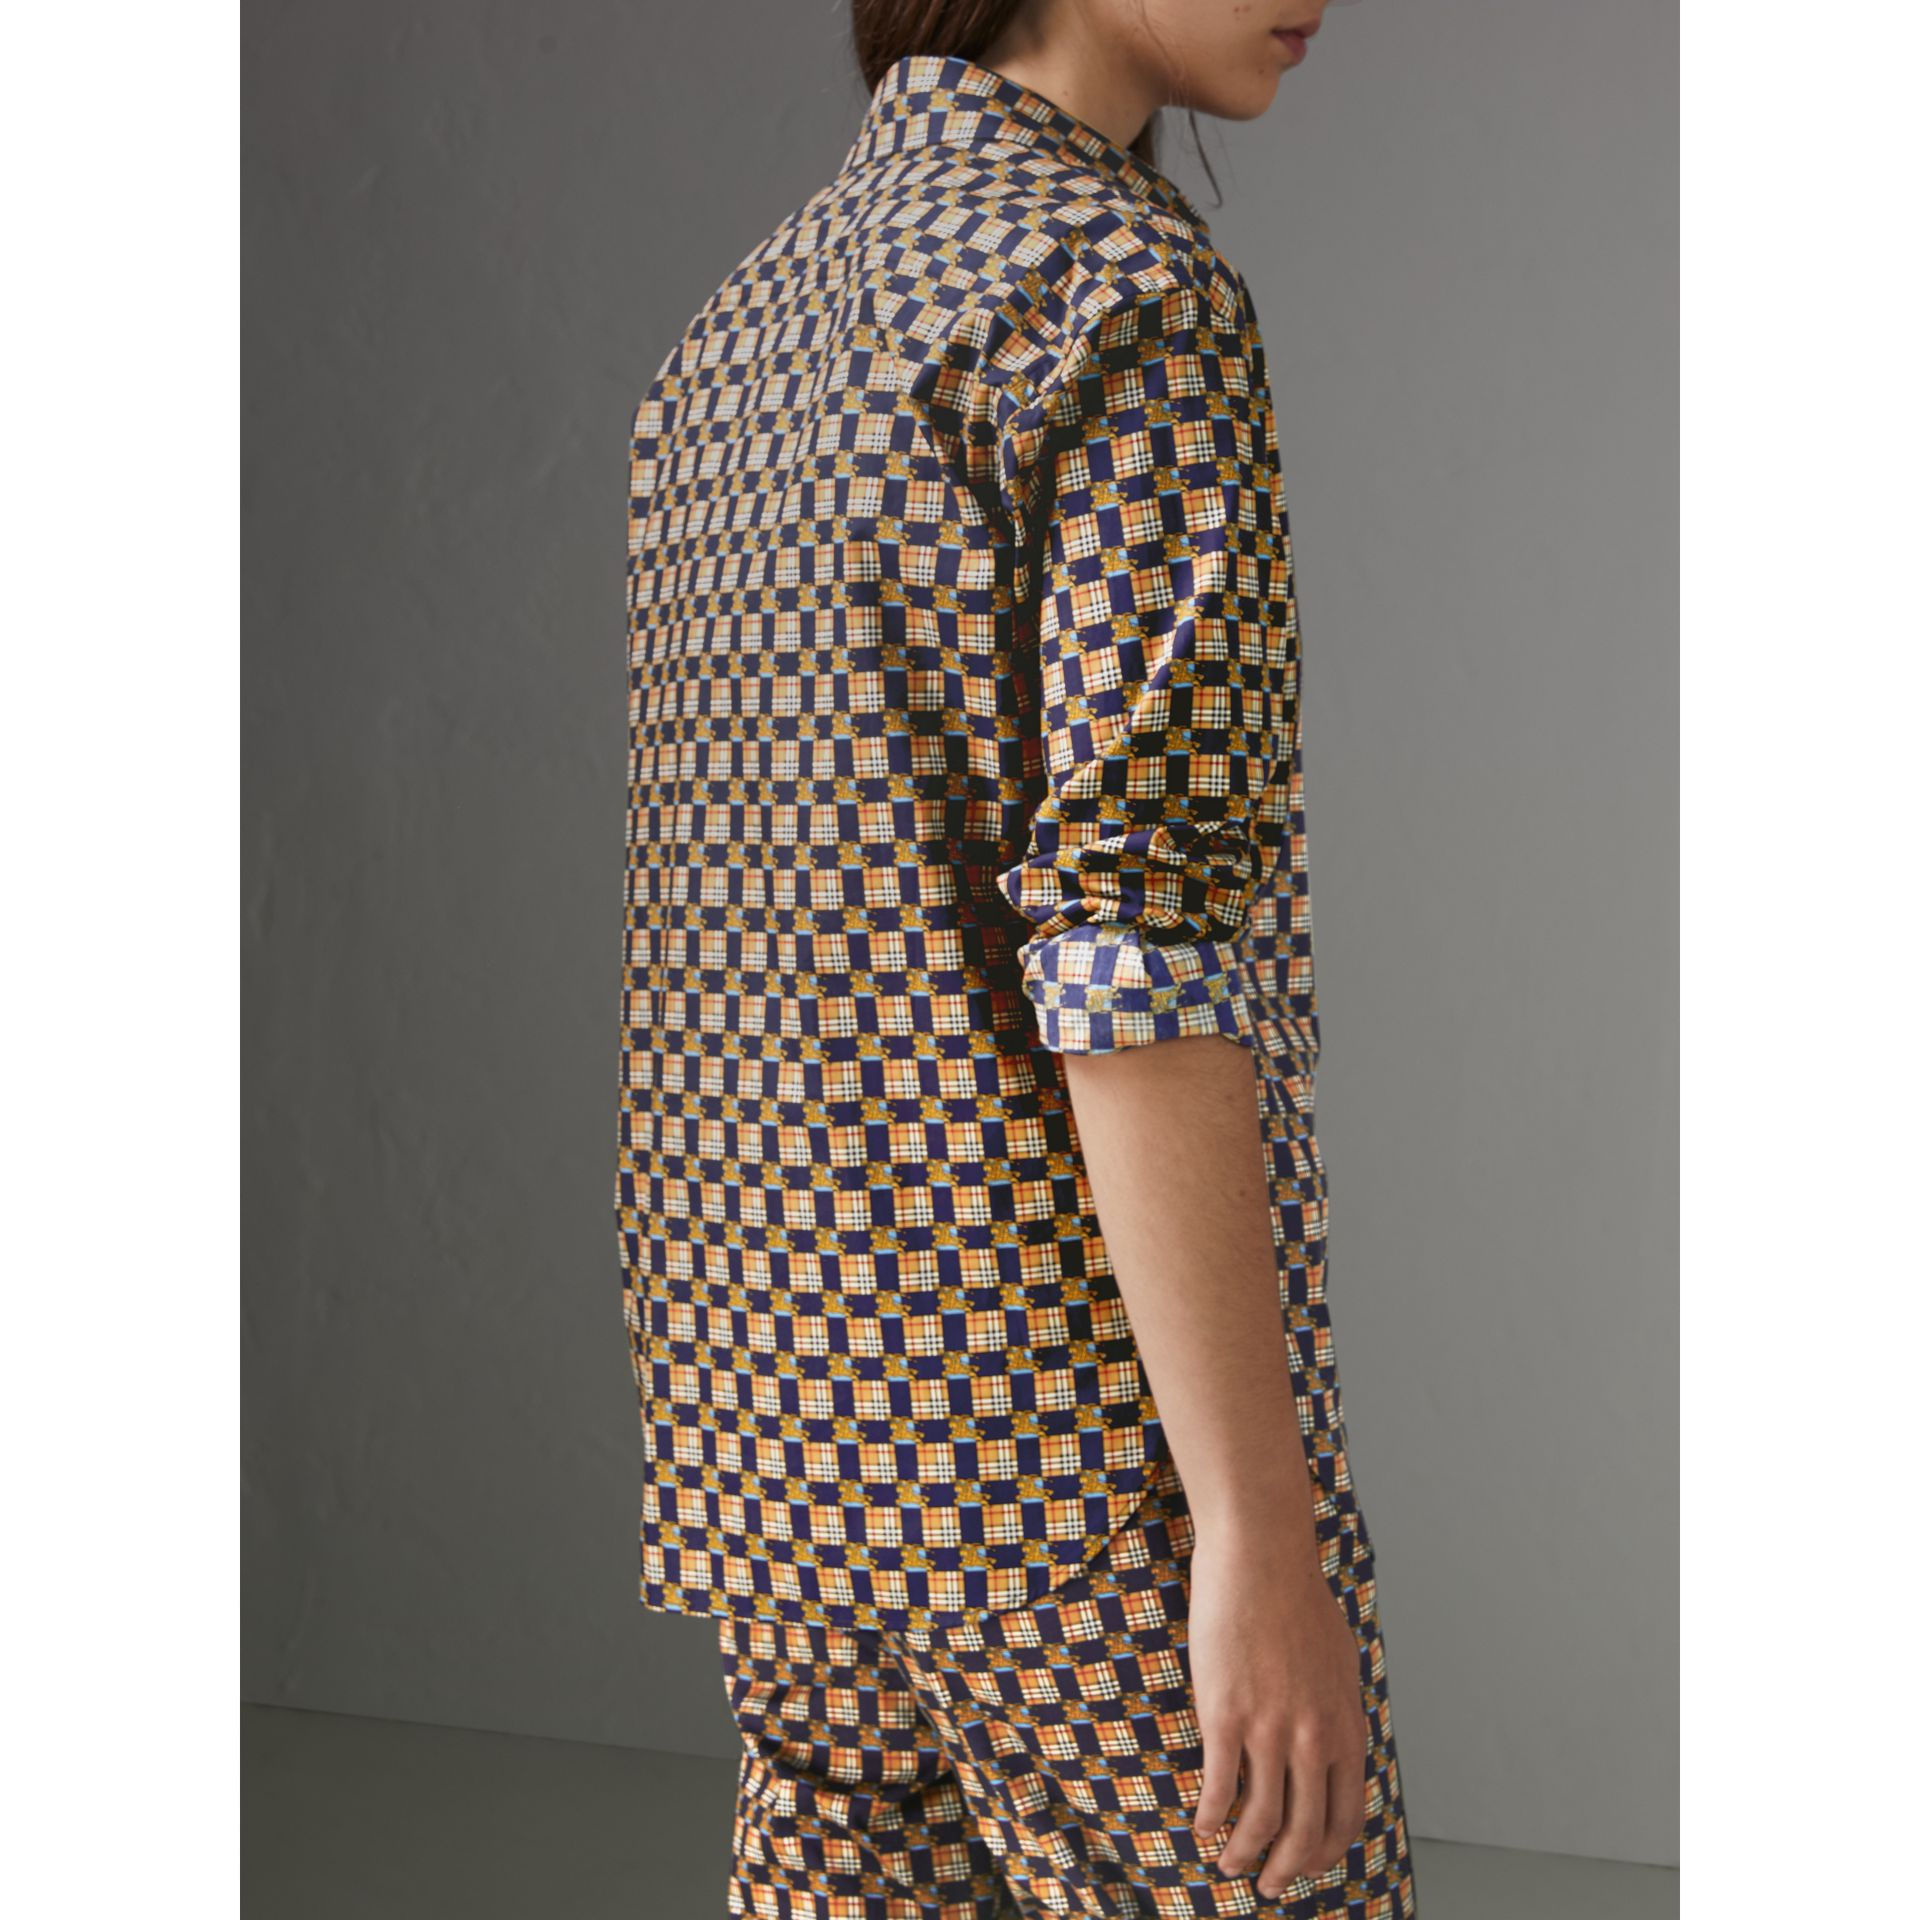 Tiled Archive Print Cotton Shirt in Navy - Women | Burberry United Kingdom - gallery image 2